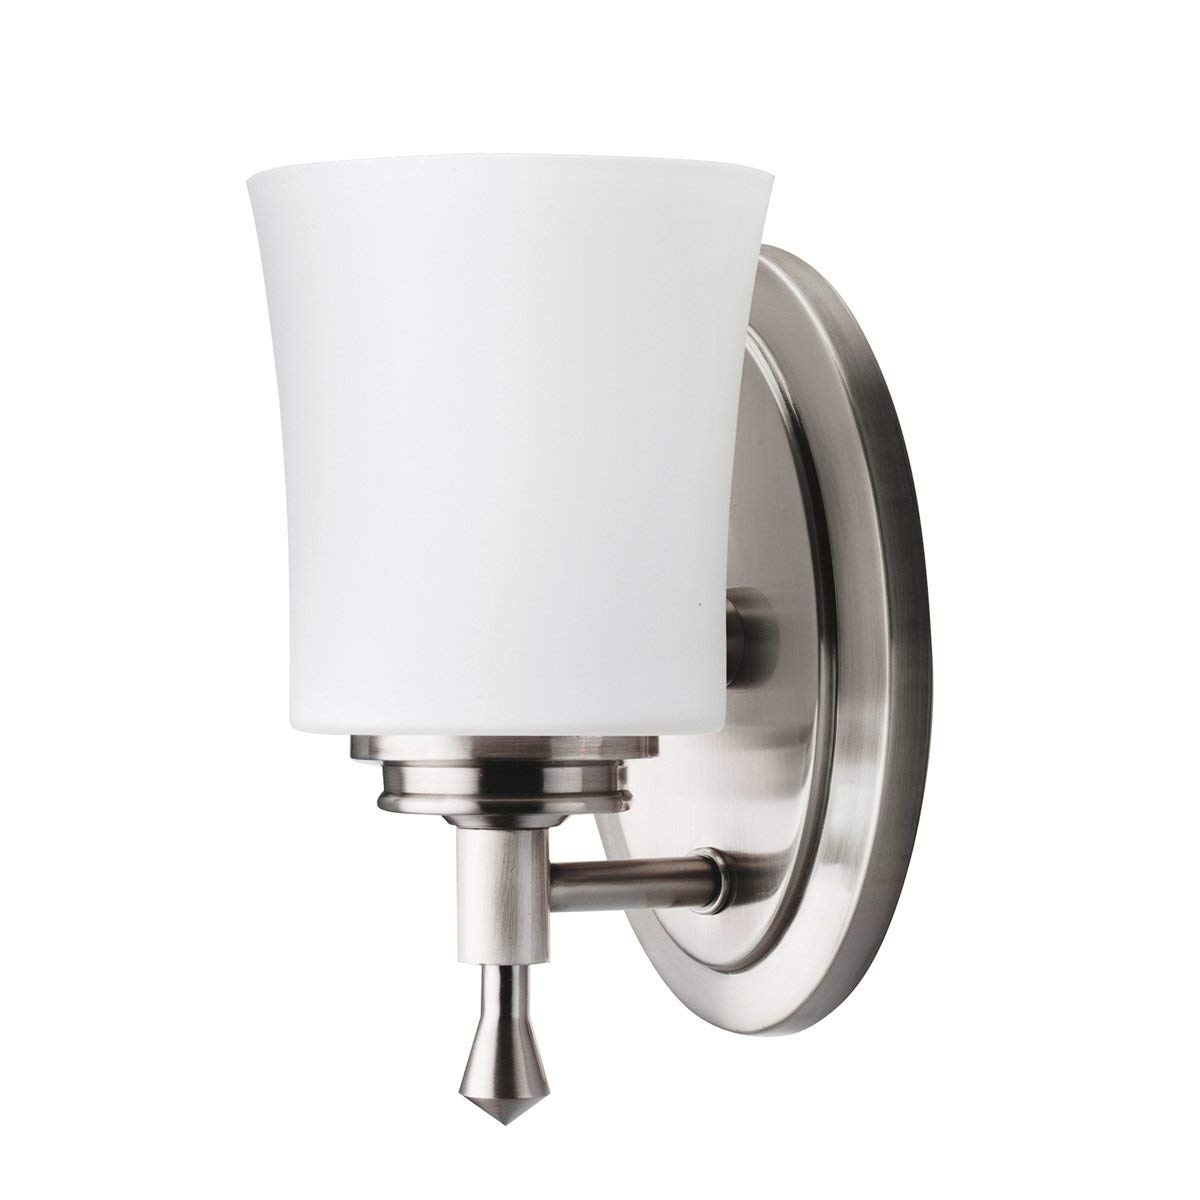 Kichler Wharton Wall Sconce Light Brushed Nickel Vanity Lighting With Regard To Well Known Outdoor Lanterns At Bunnings (Gallery 17 of 20)